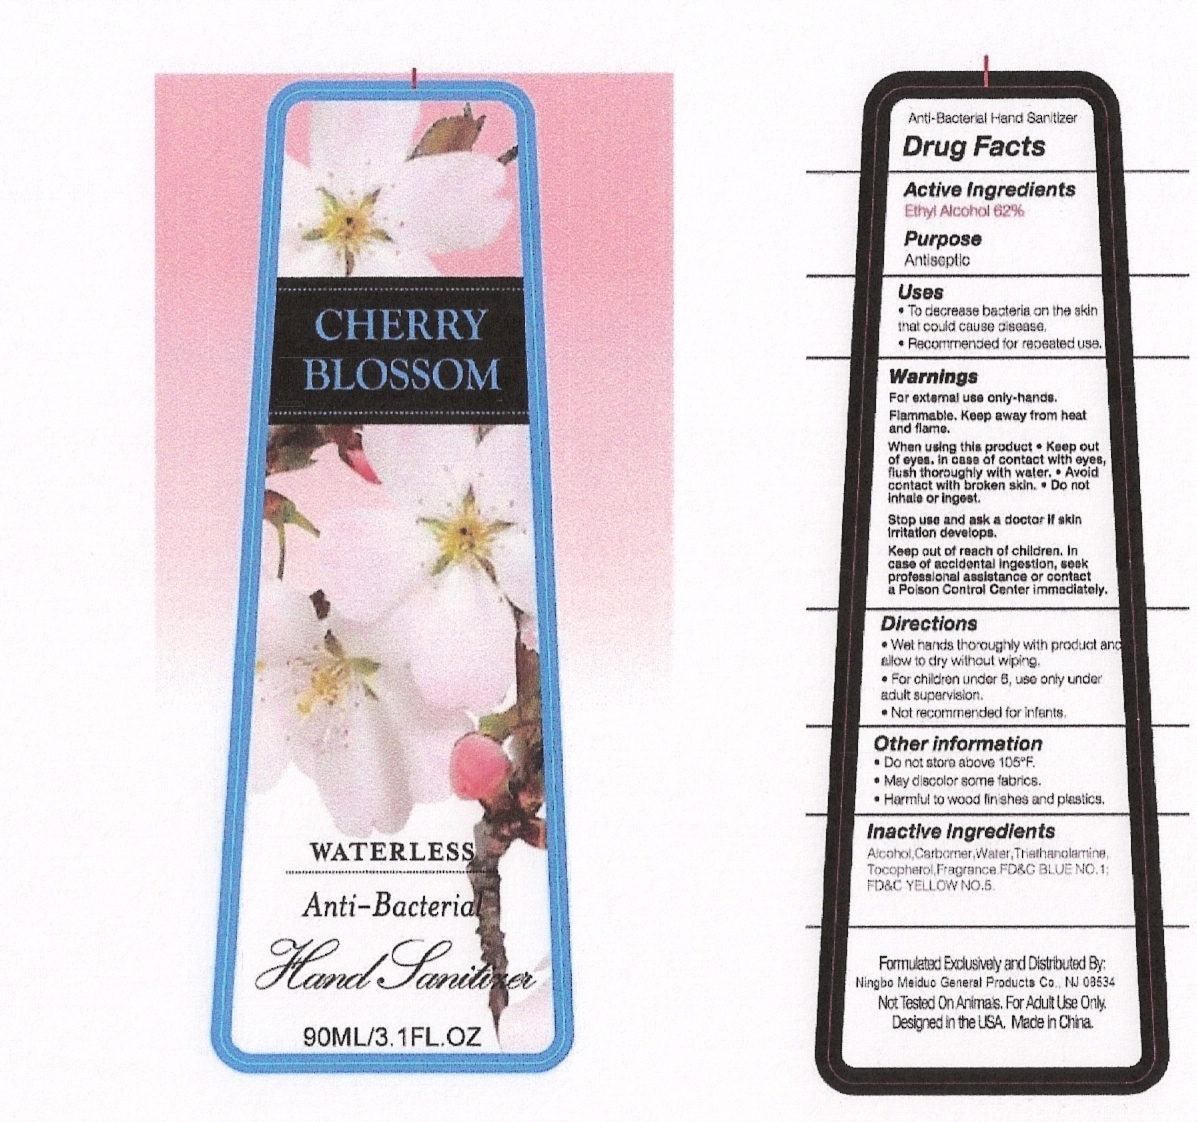 Cherry Blossom Waterless Anti-antibateria Hand Sanitizer (Alcohol) Liquid [Ningbo Meiduo General Products Co., Ltd]